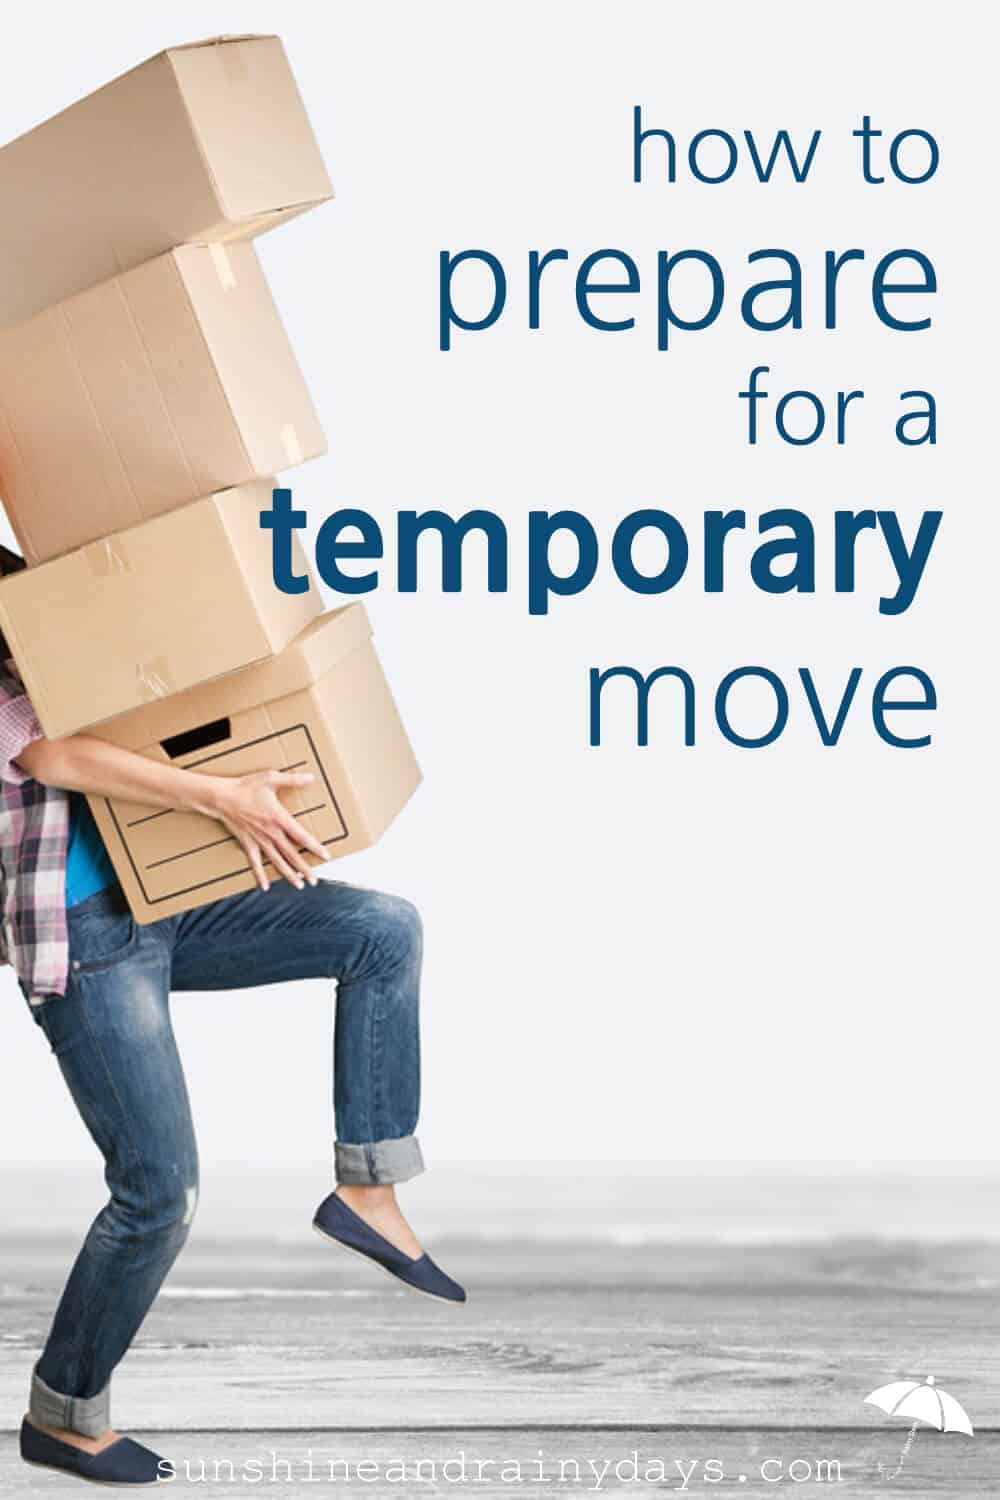 Have you found yourself in the situation where you must prepare for a temporary move? Choose what is worth the move. Determine what must be accessible. Pack in bankers boxes. Decide what could survive storage. Hold a moving sale.